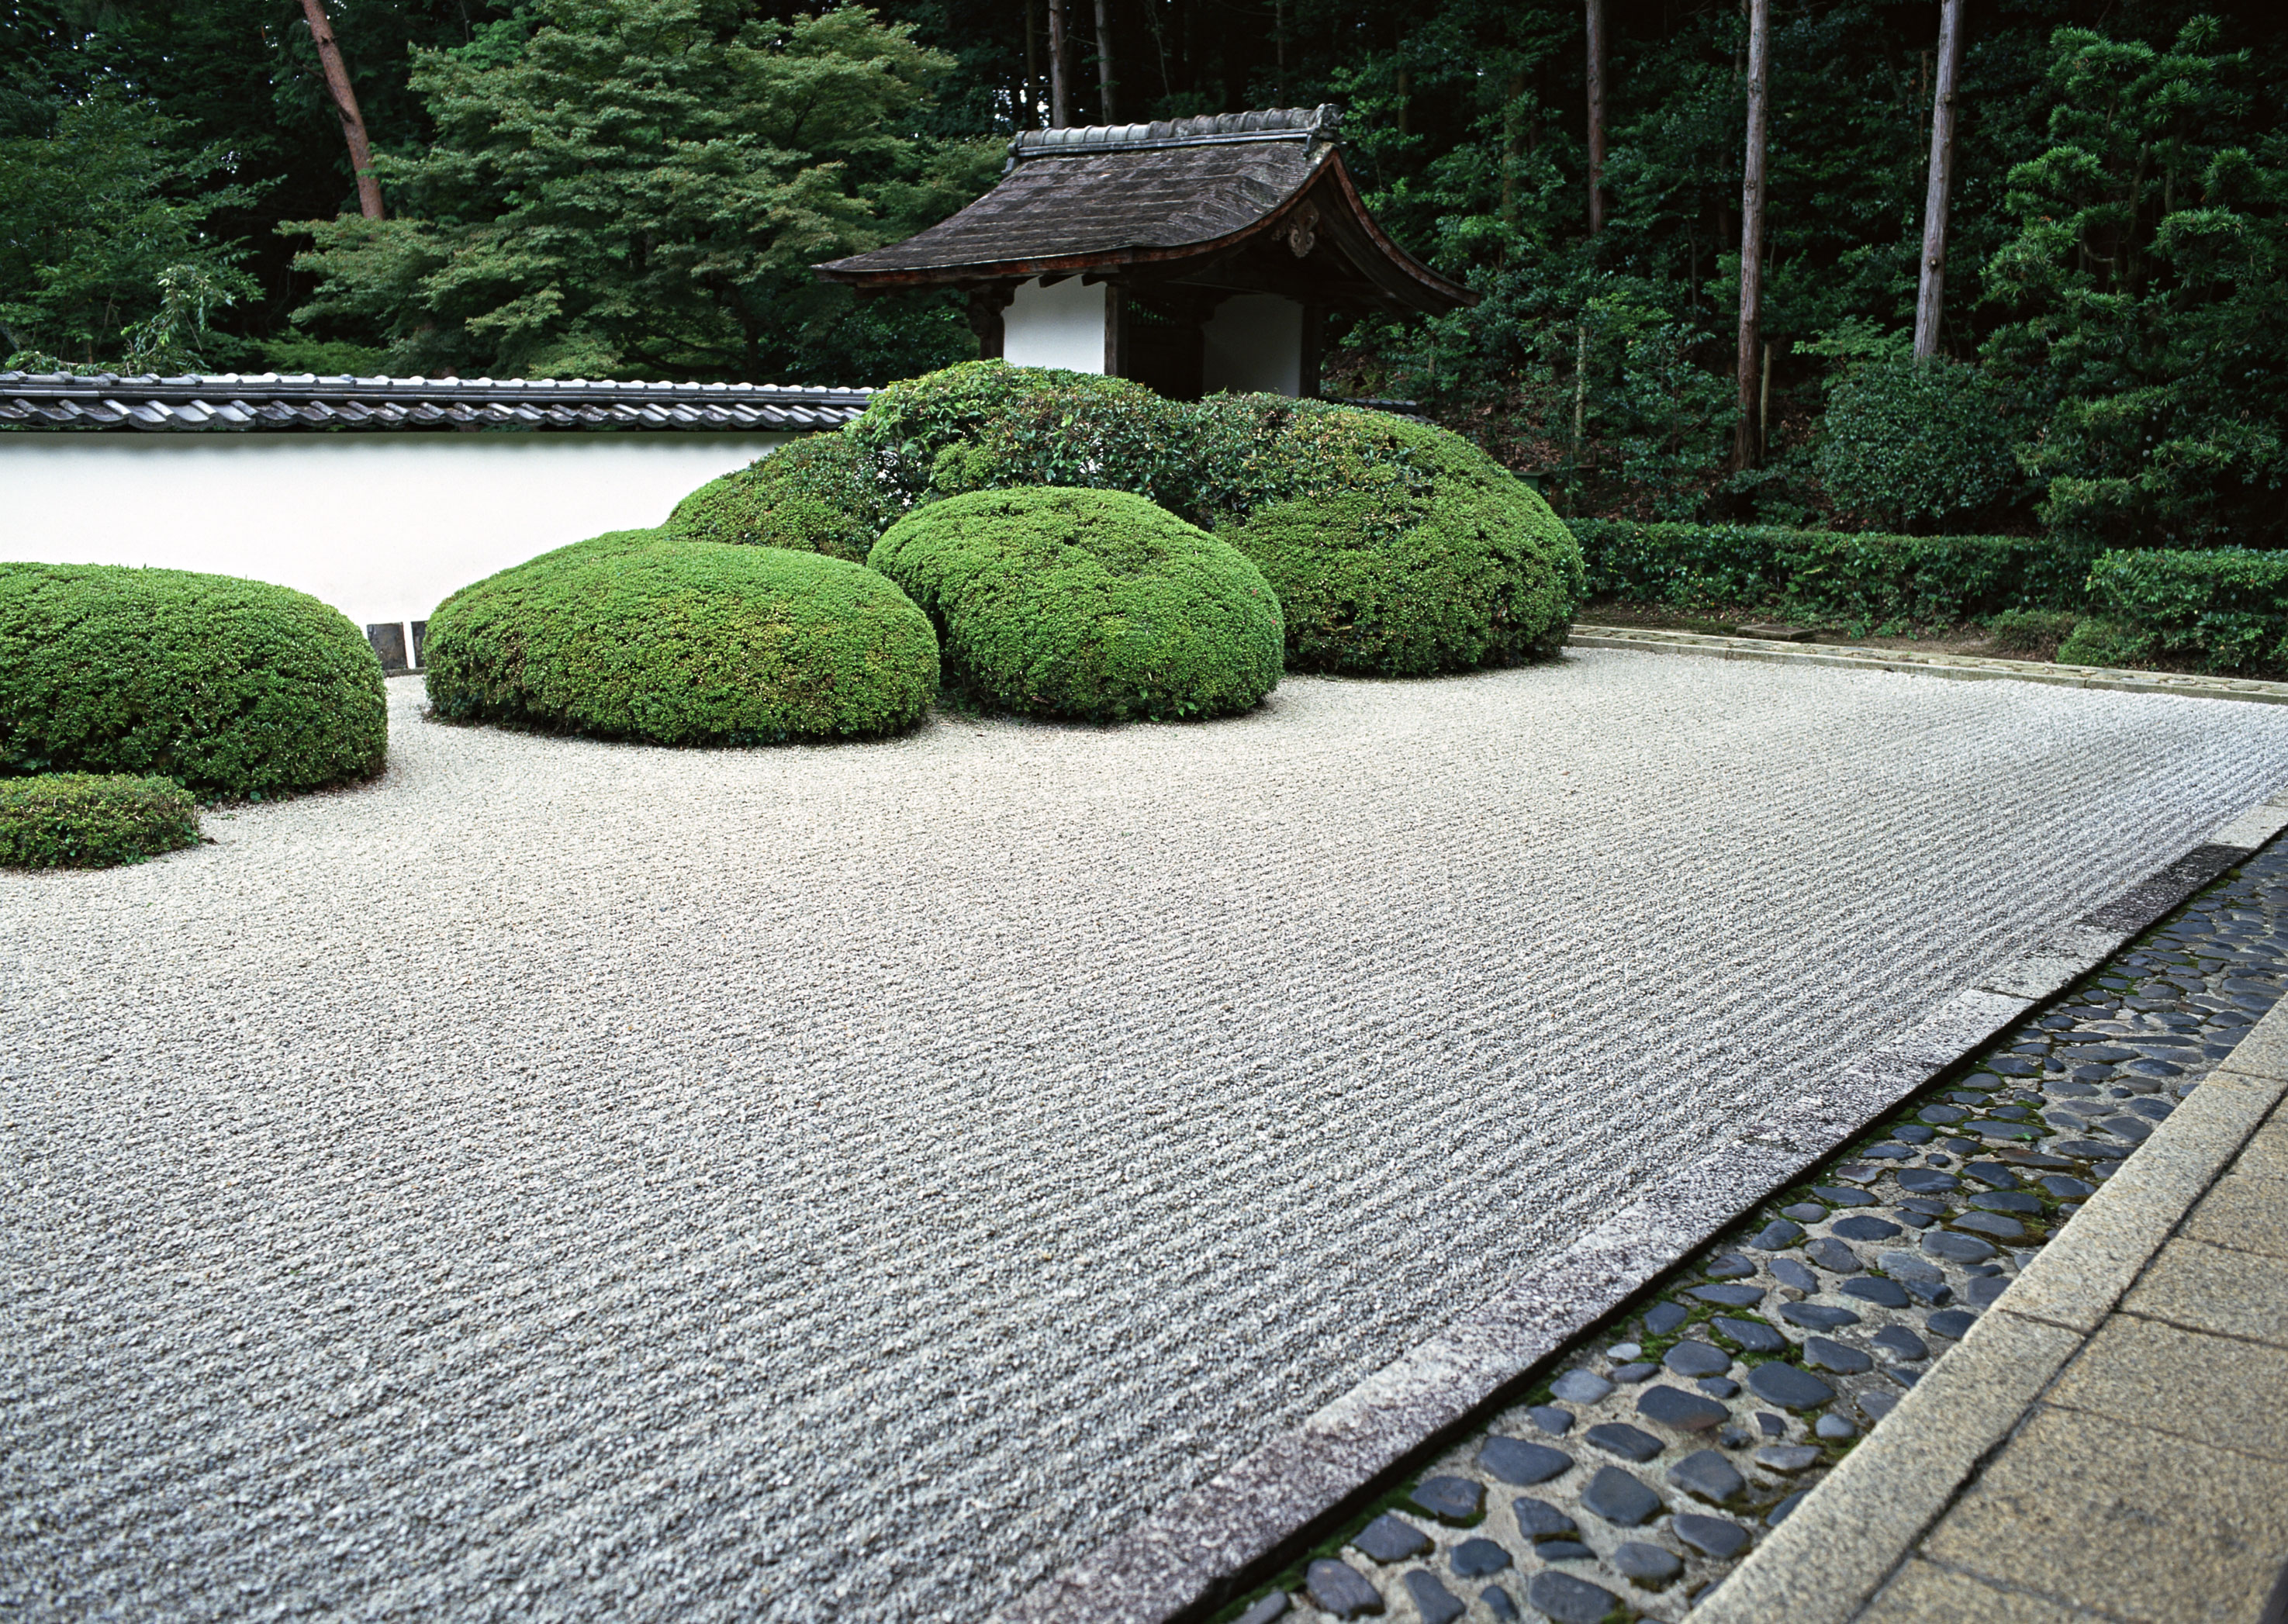 Captivating Japanese, Garden, Design, Simple Part 6